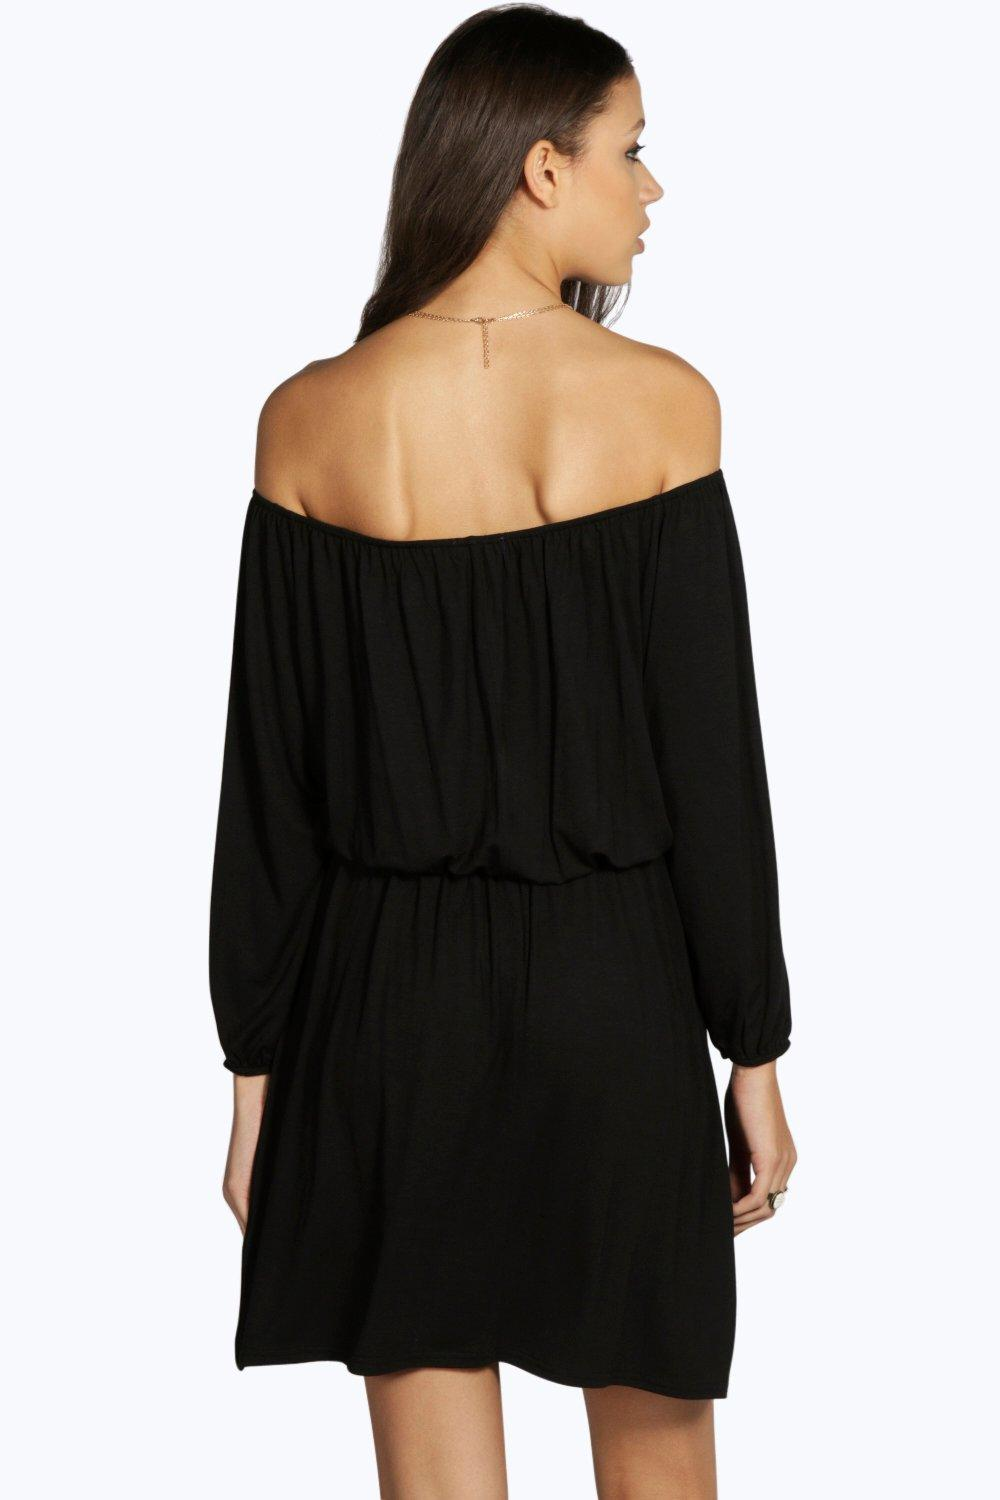 Clothes for tall women uk